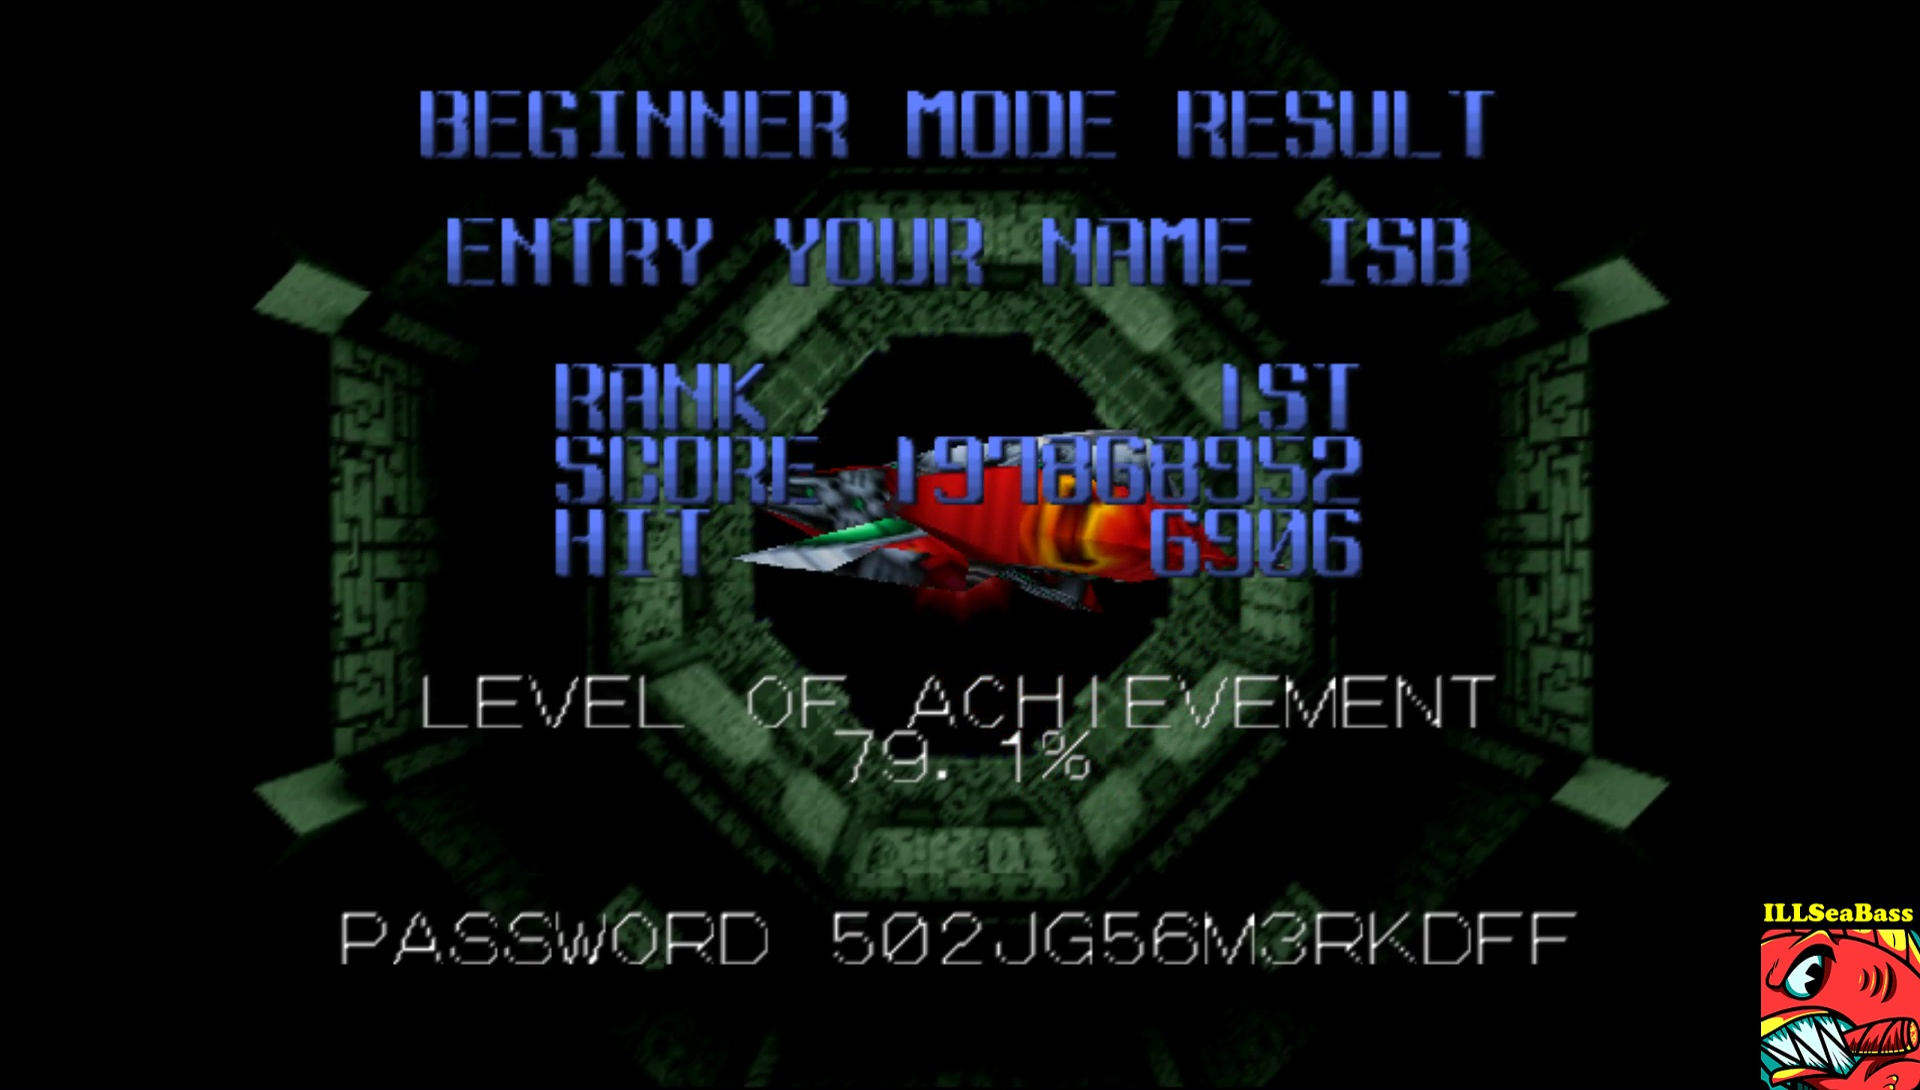 ILLSeaBass: Star Soldier Vanishing Earth: Normal Mode [Beginner] (N64 Emulated) 197,868,952 points on 2017-06-05 20:24:15